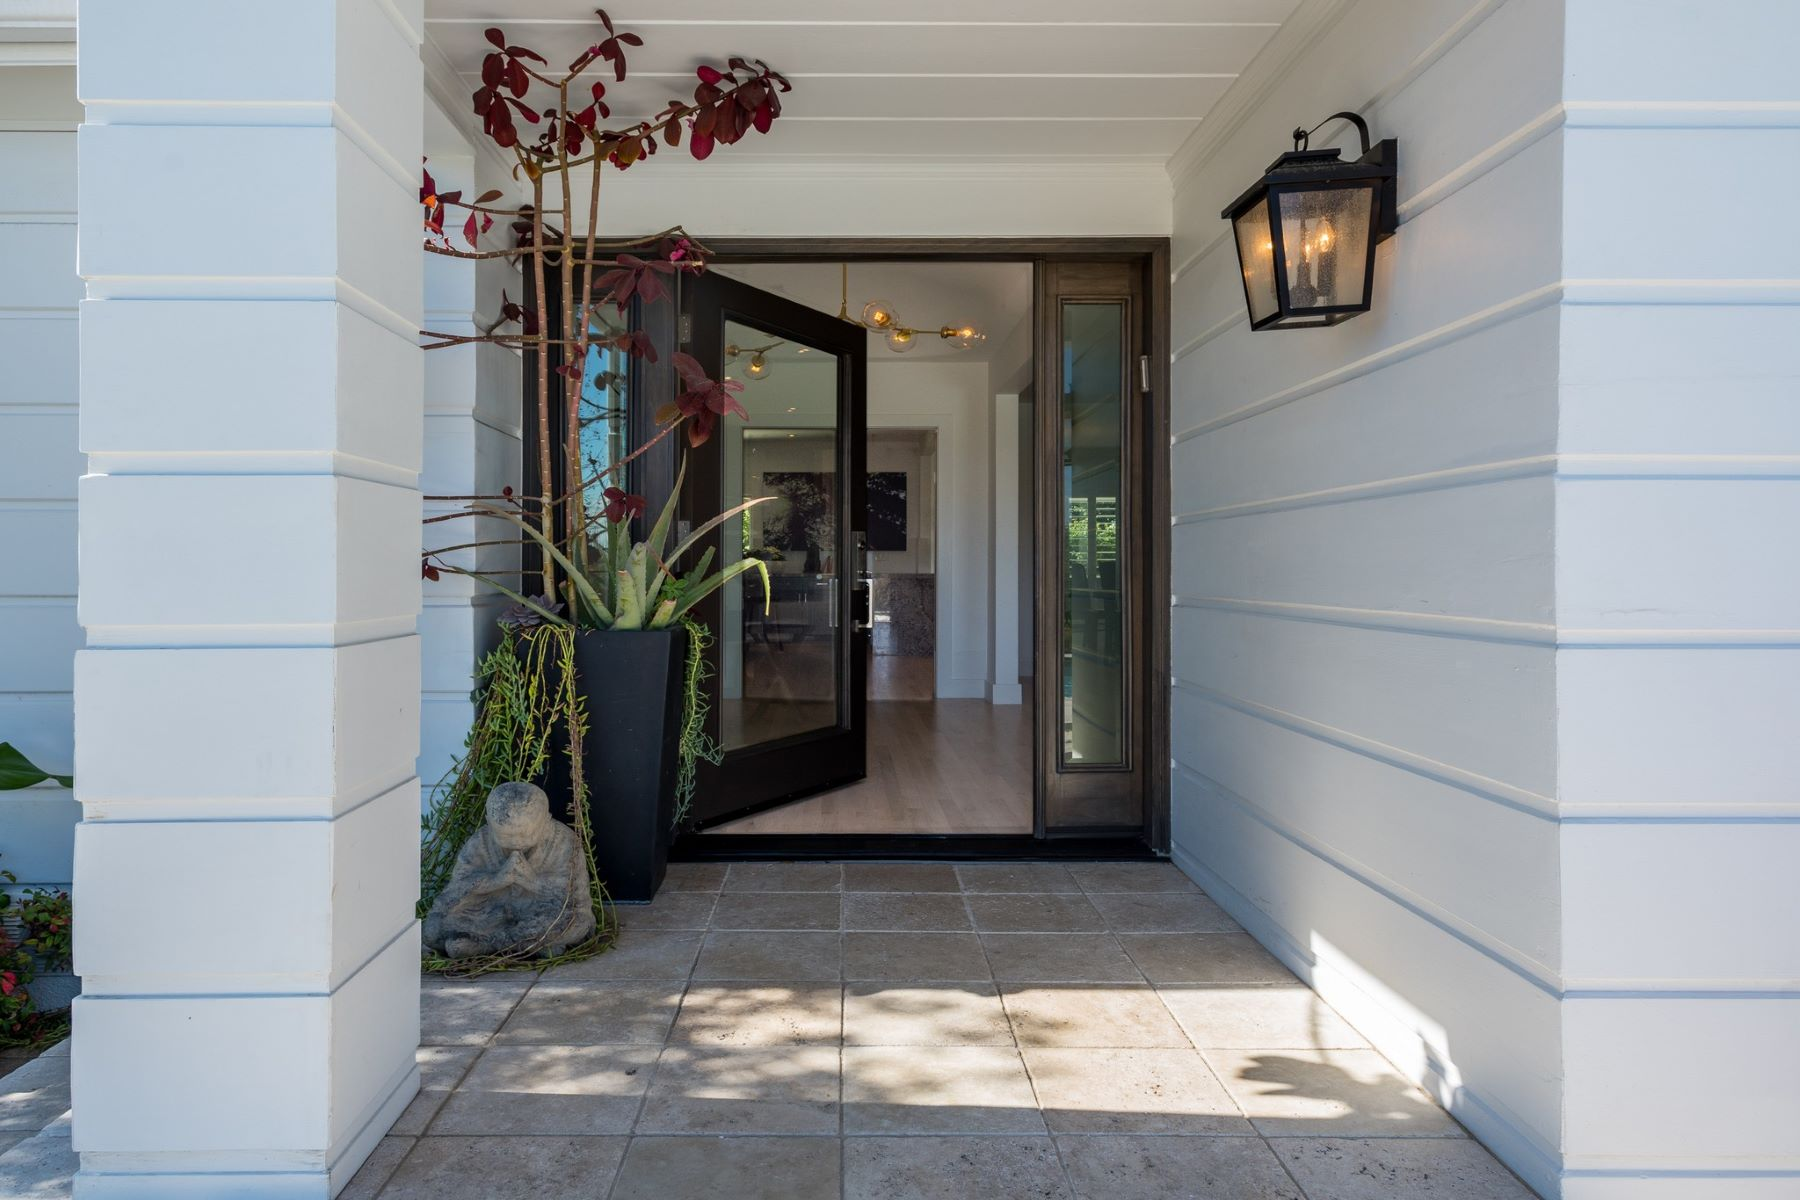 Additional photo for property listing at 14746 Valley Vista Bl  Sherman Oaks, California 91403 United States